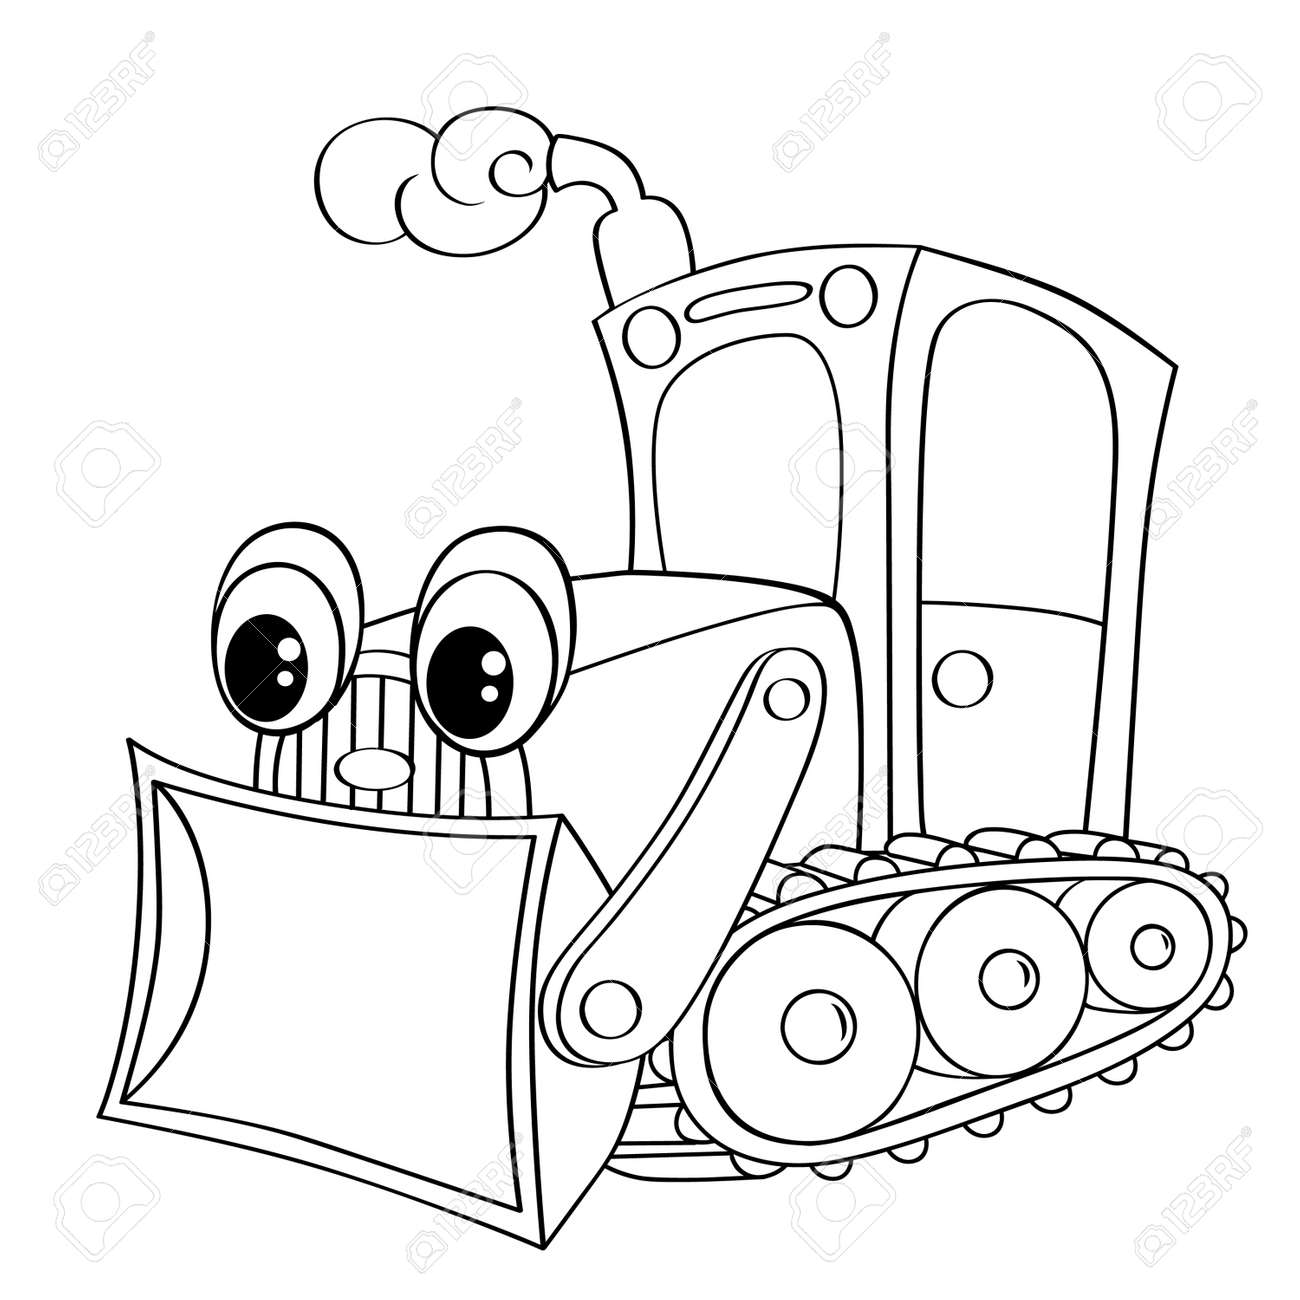 Construction machinery coloring pages - Construction Truck Cartoon Funny Cartoon Bulldozer Black And White Vector Illustration For Coloring Book